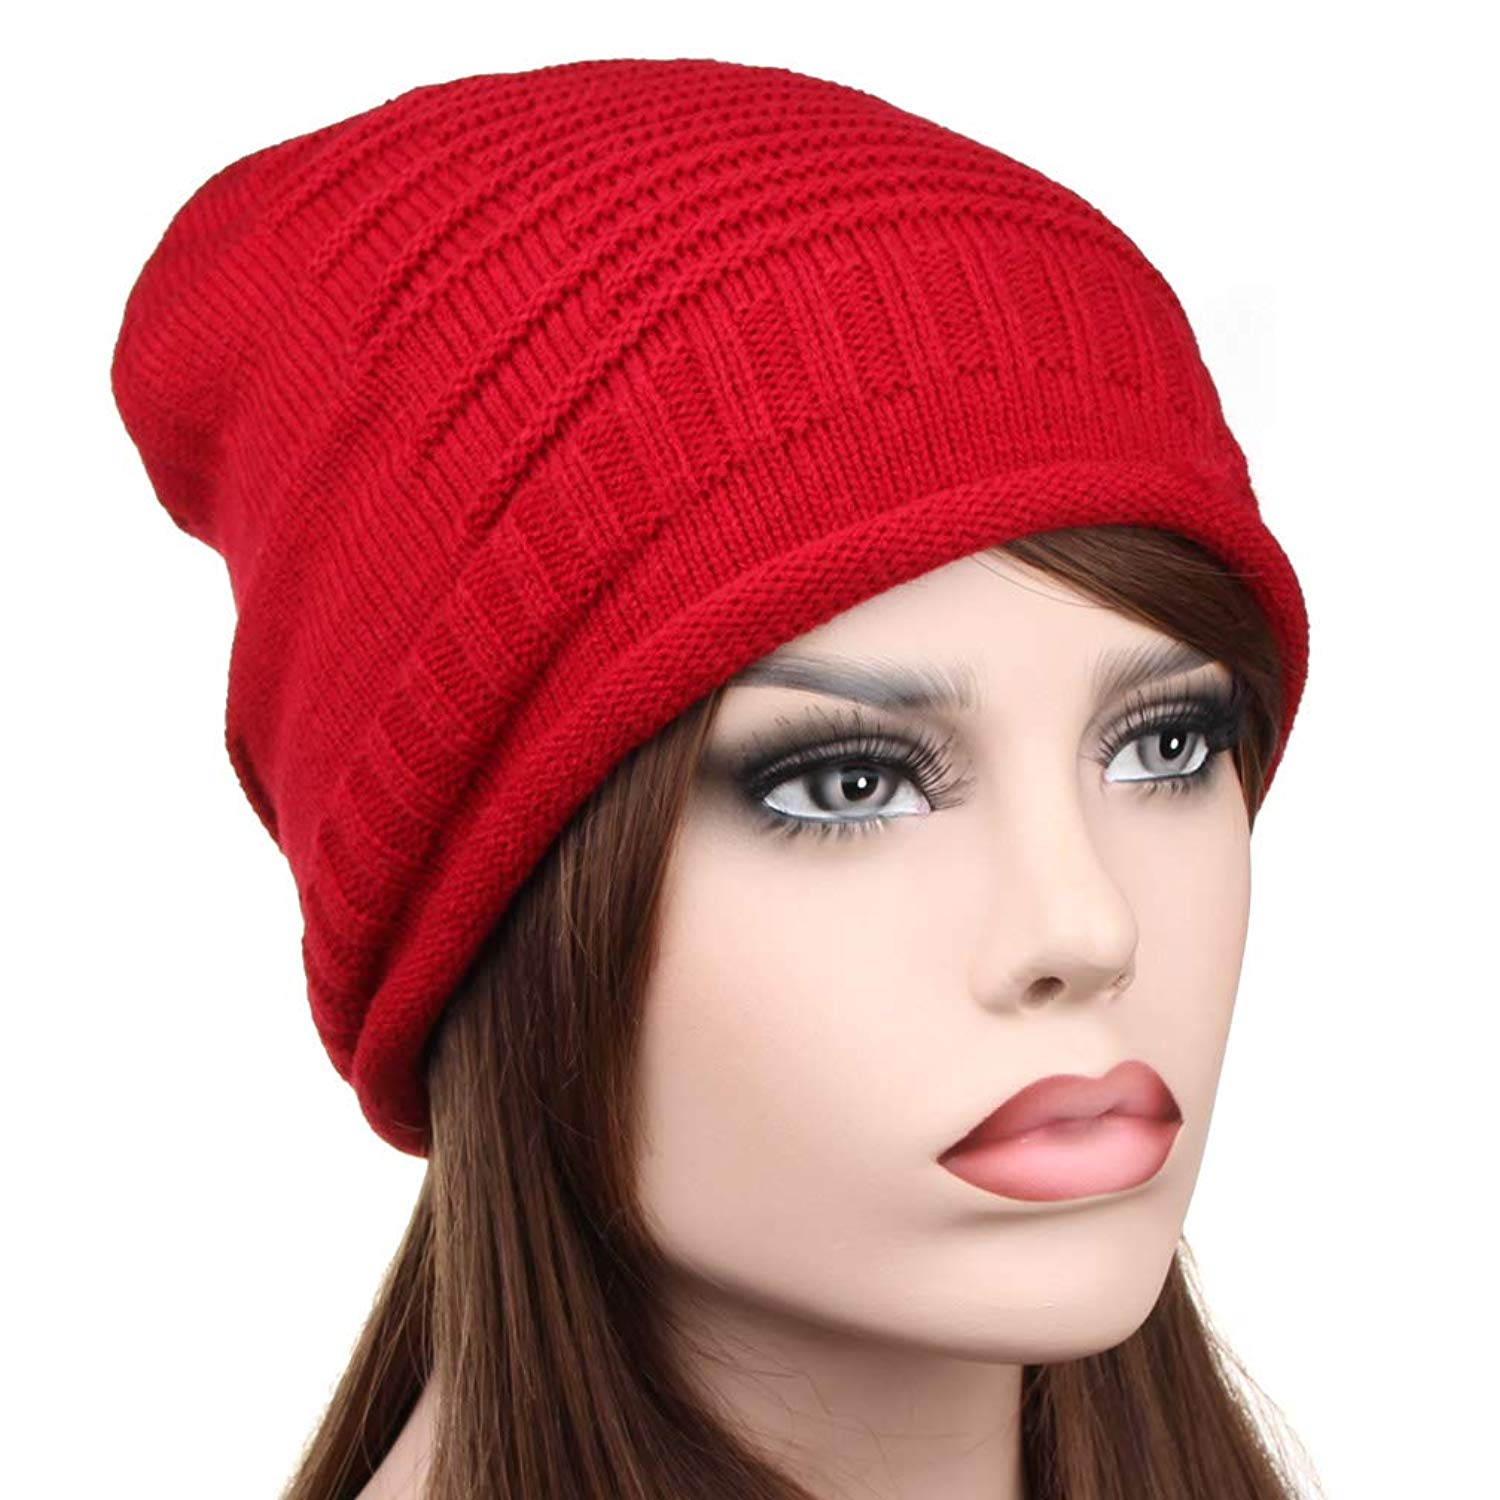 ca83a4c5f Cheap Knitted Slouchy Beanie Pattern Free, find Knitted Slouchy ...